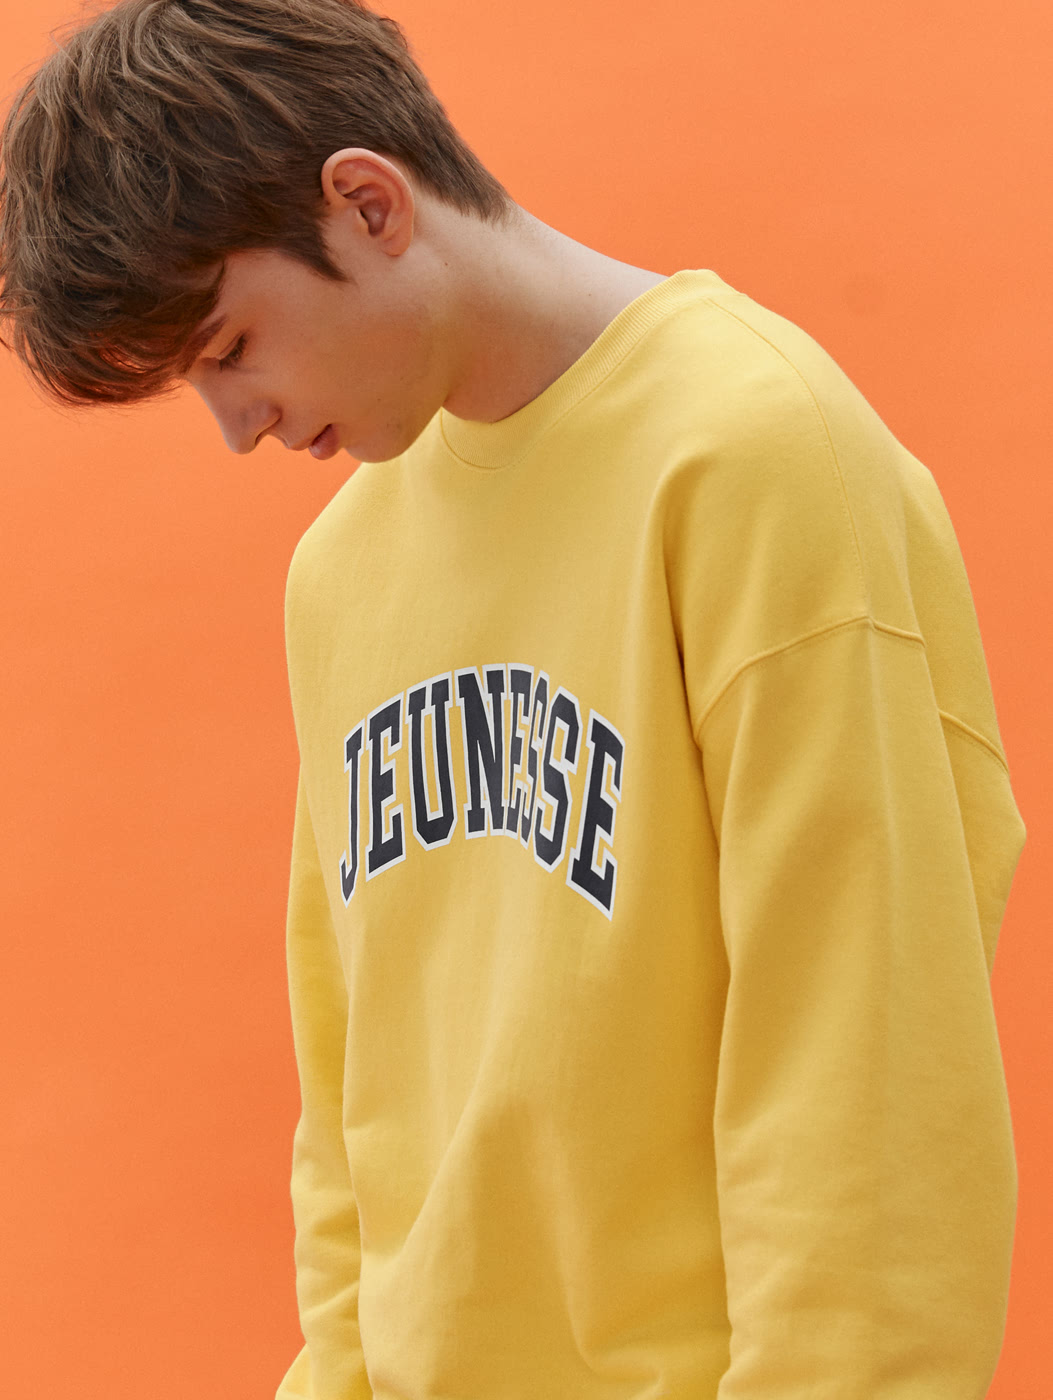 Signature Logo Sweatshirts Yellow (SS Version)[배우 김보라, 다비치 강민경 착용]